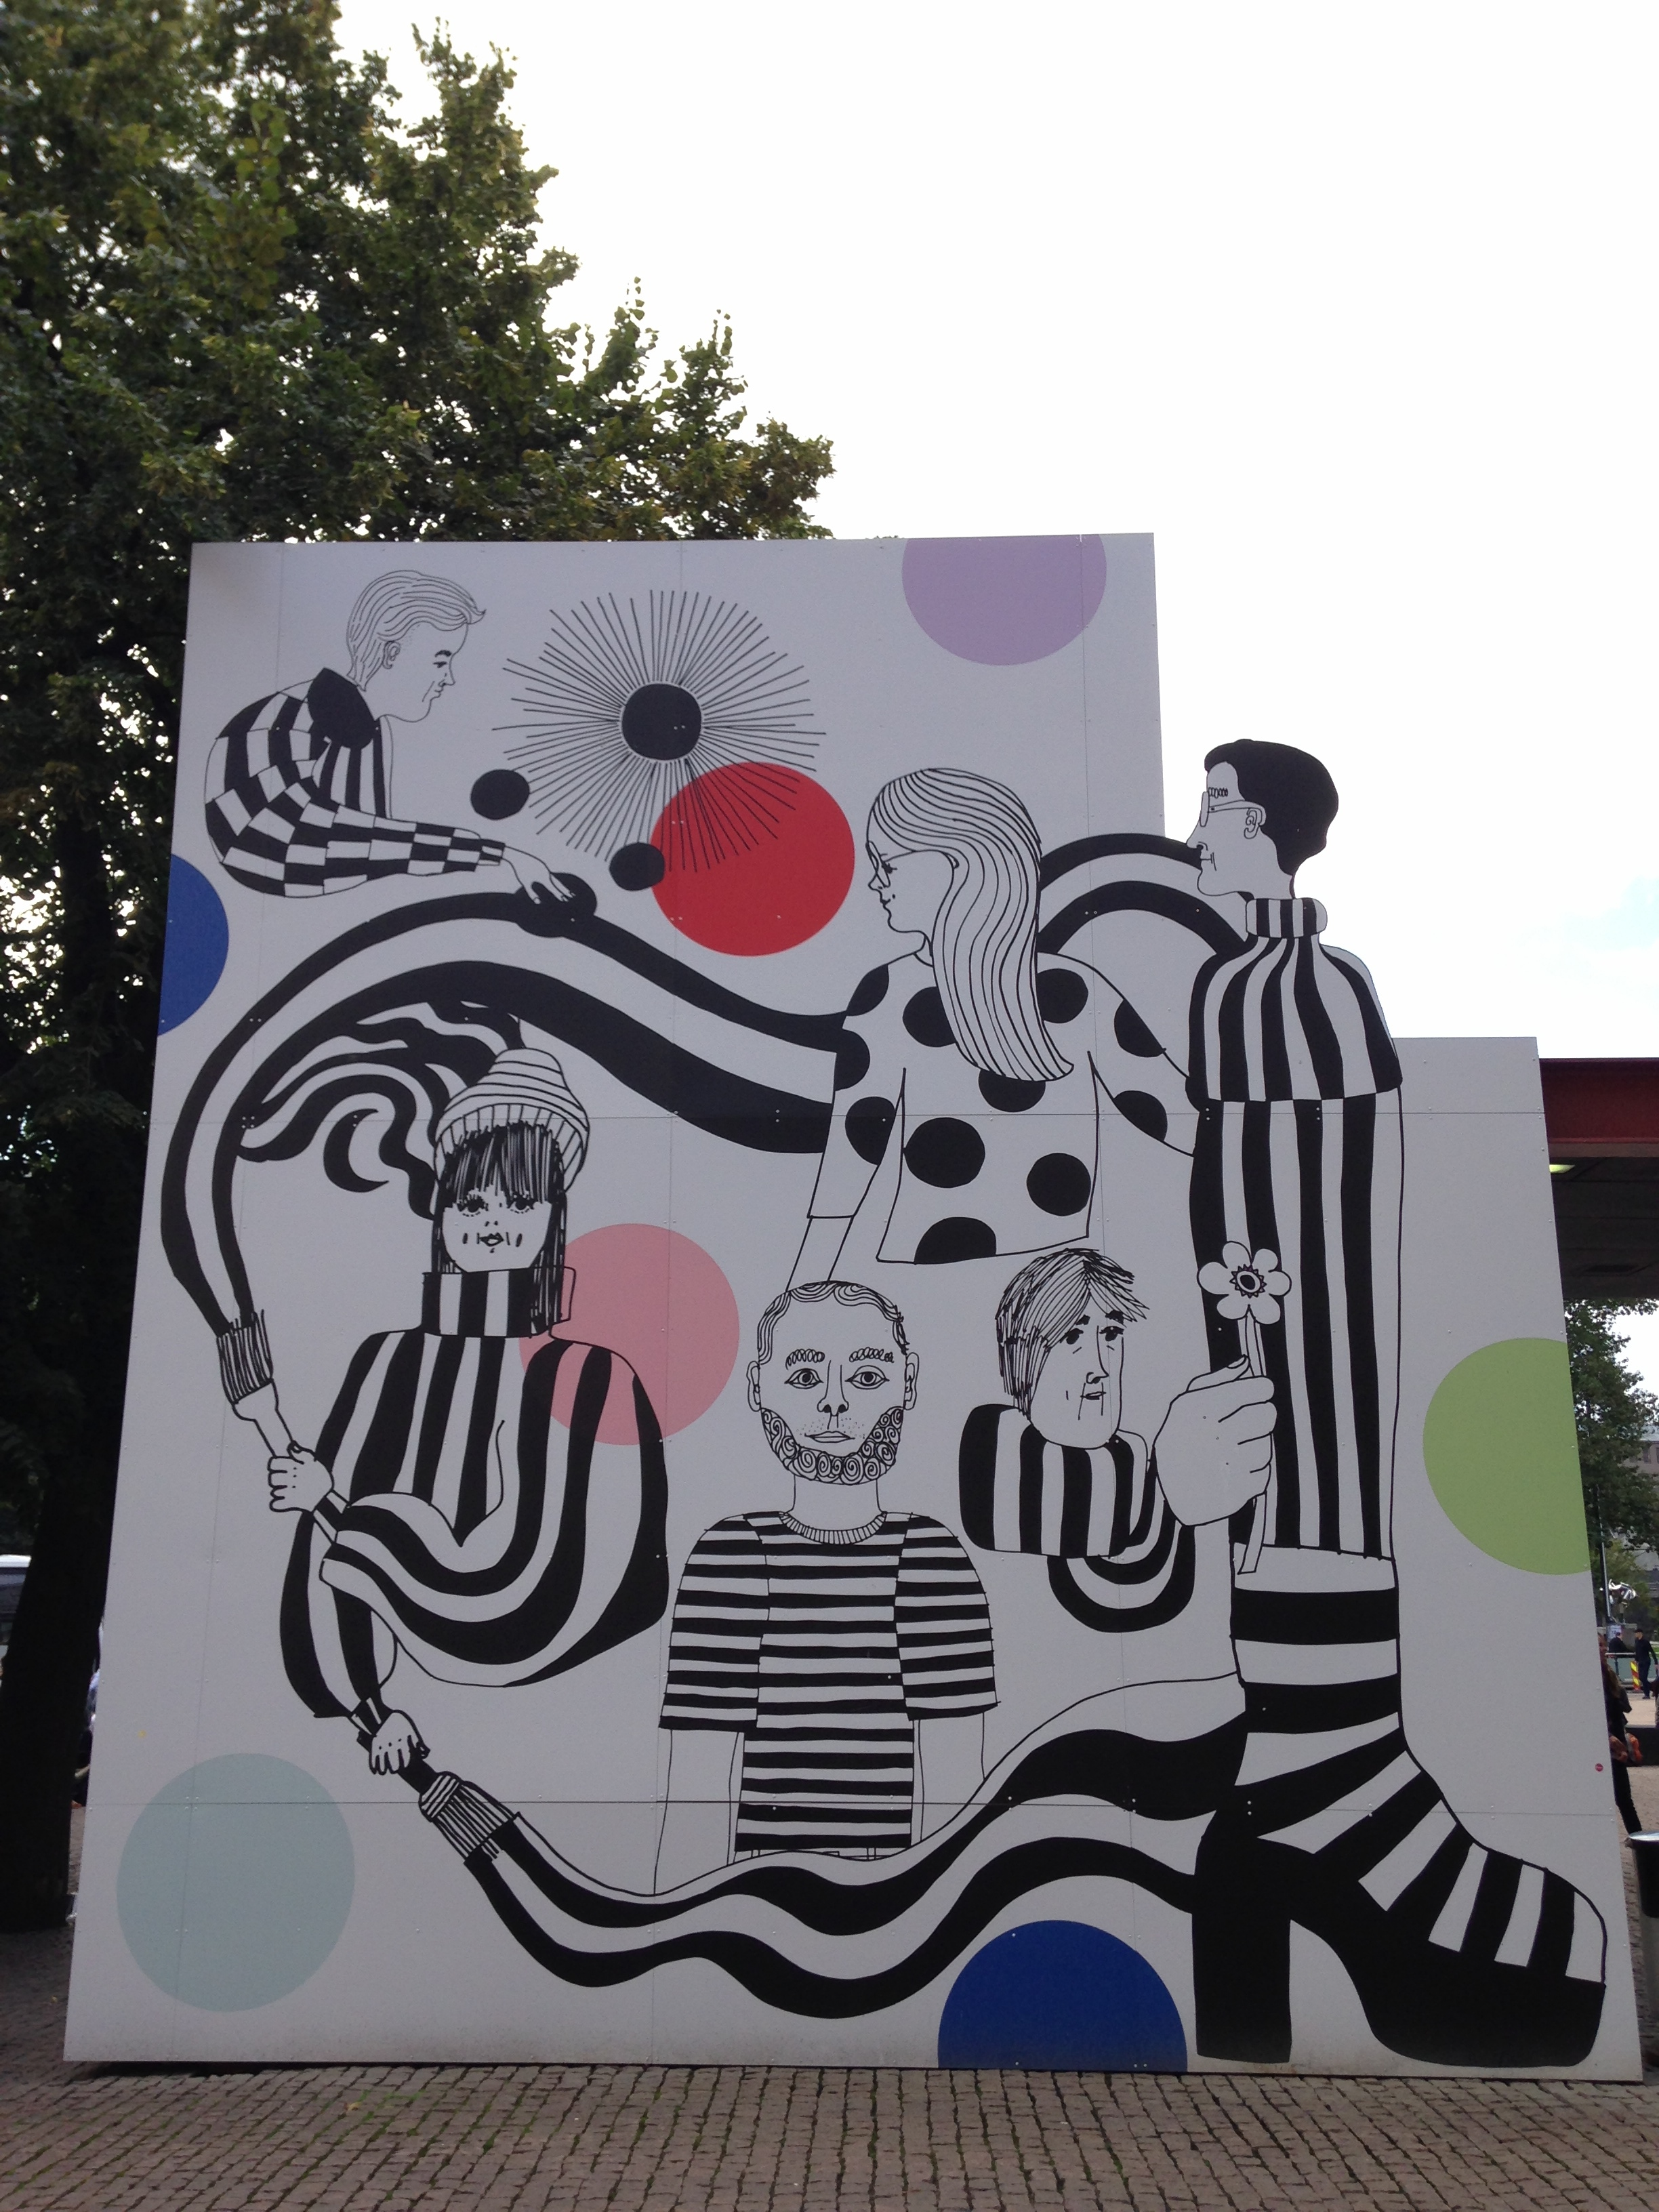 A Marimekko design outside the contemporary art museum